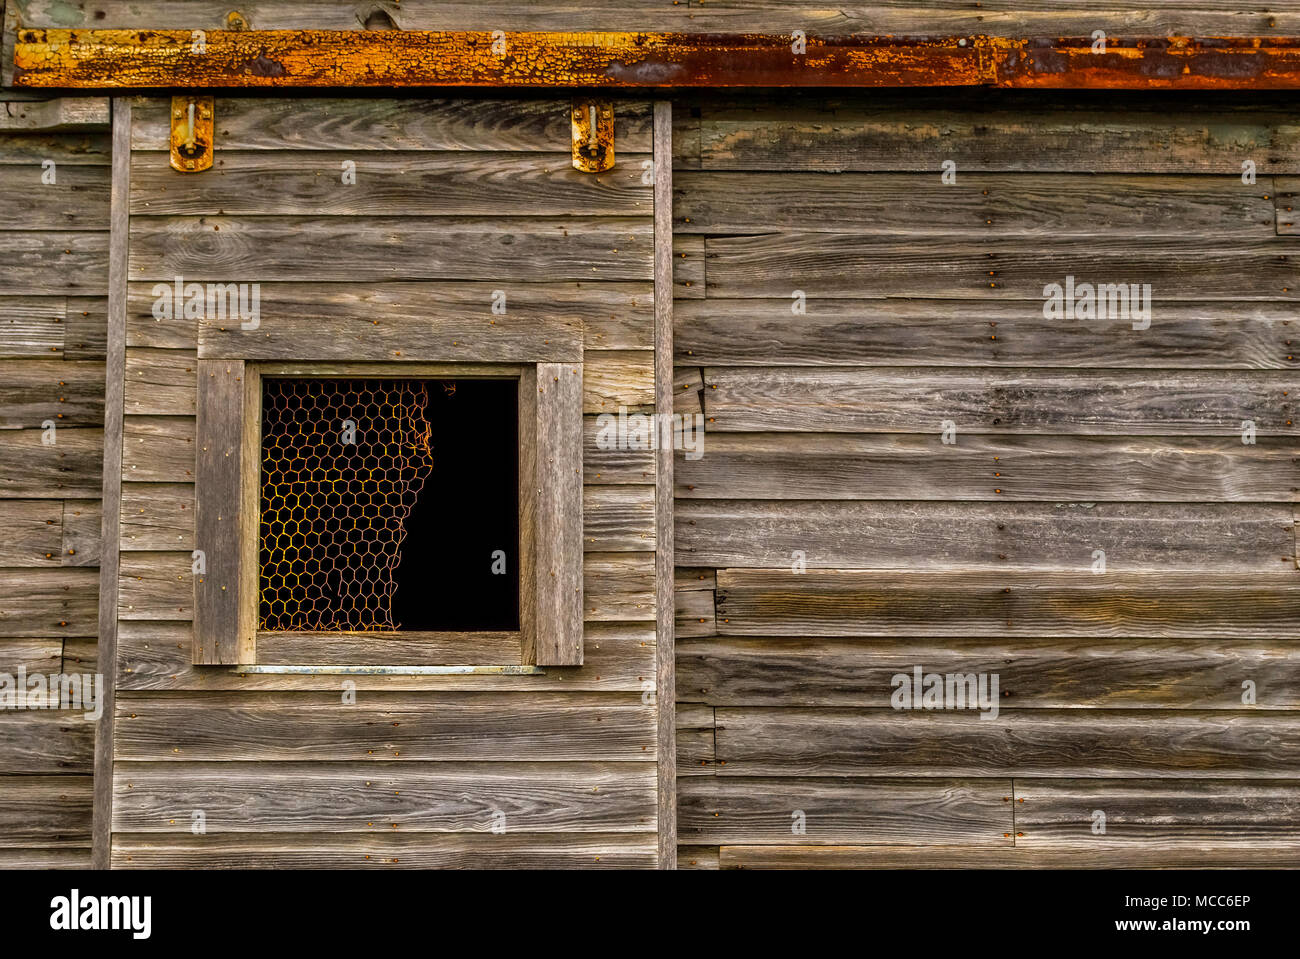 Sliding Barn Door On Rollers And A Rail Stock Photo 179748094 Alamy